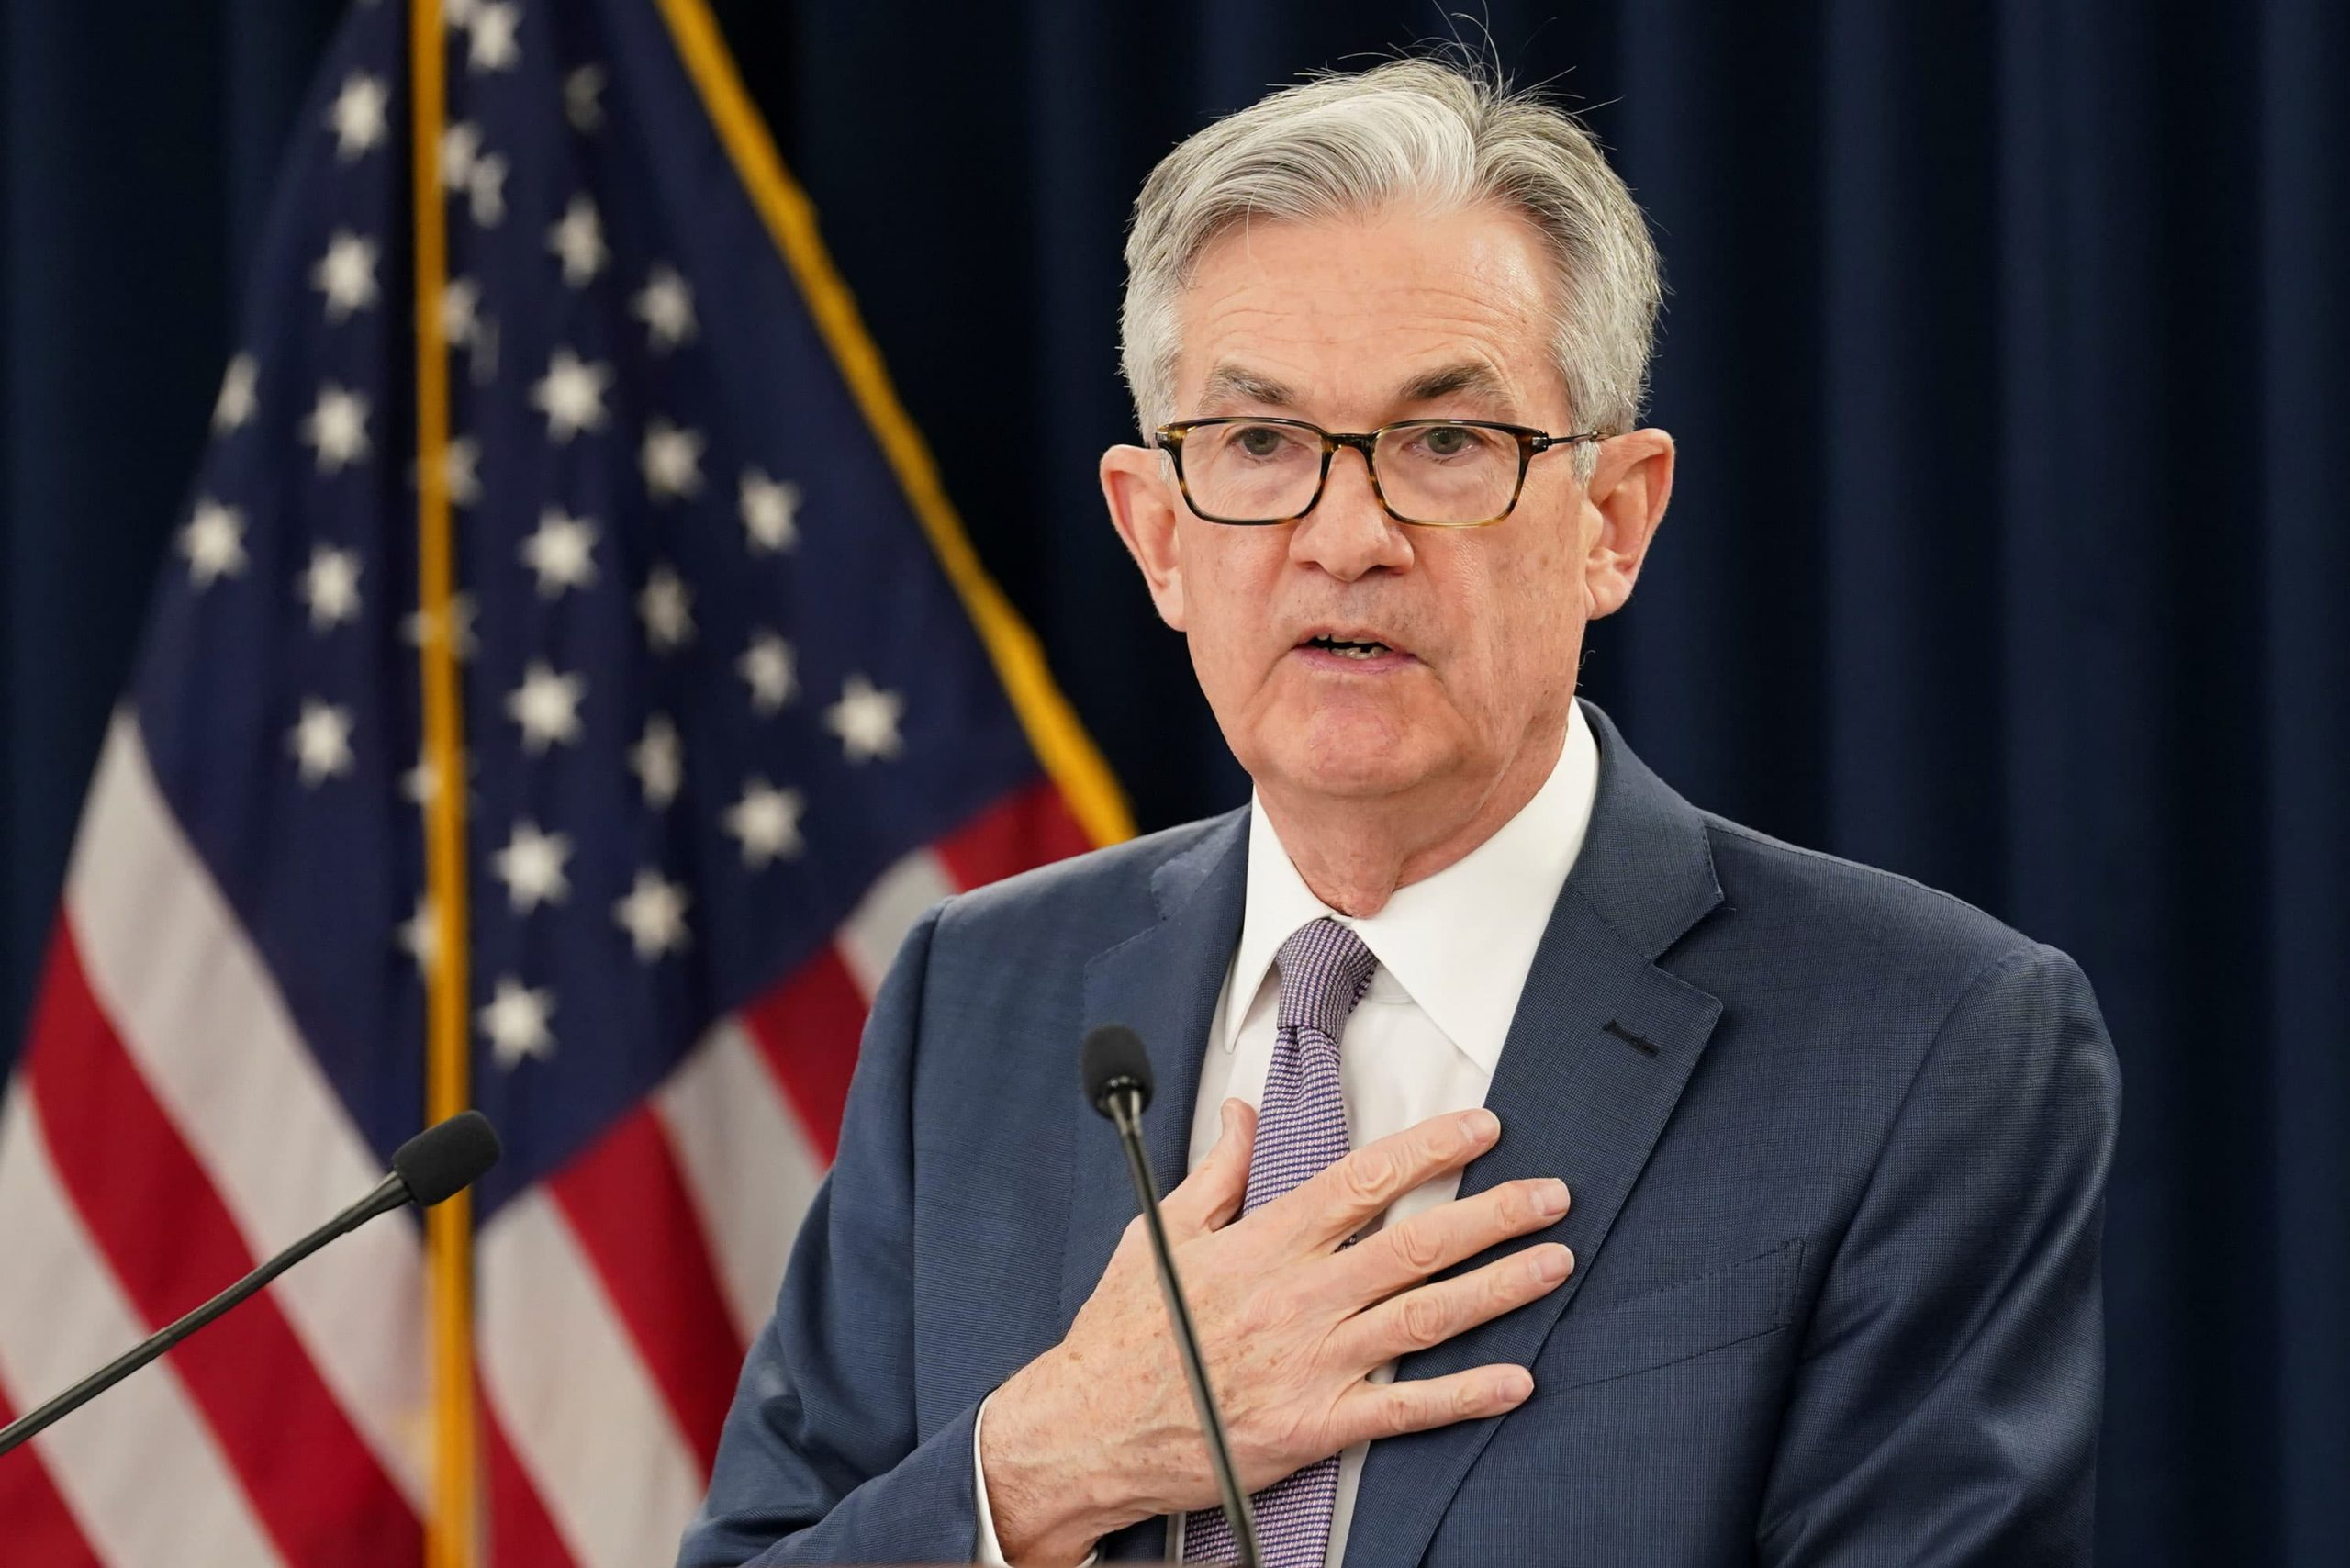 The Fed can fight inflation, but it may come at the cost of future growth